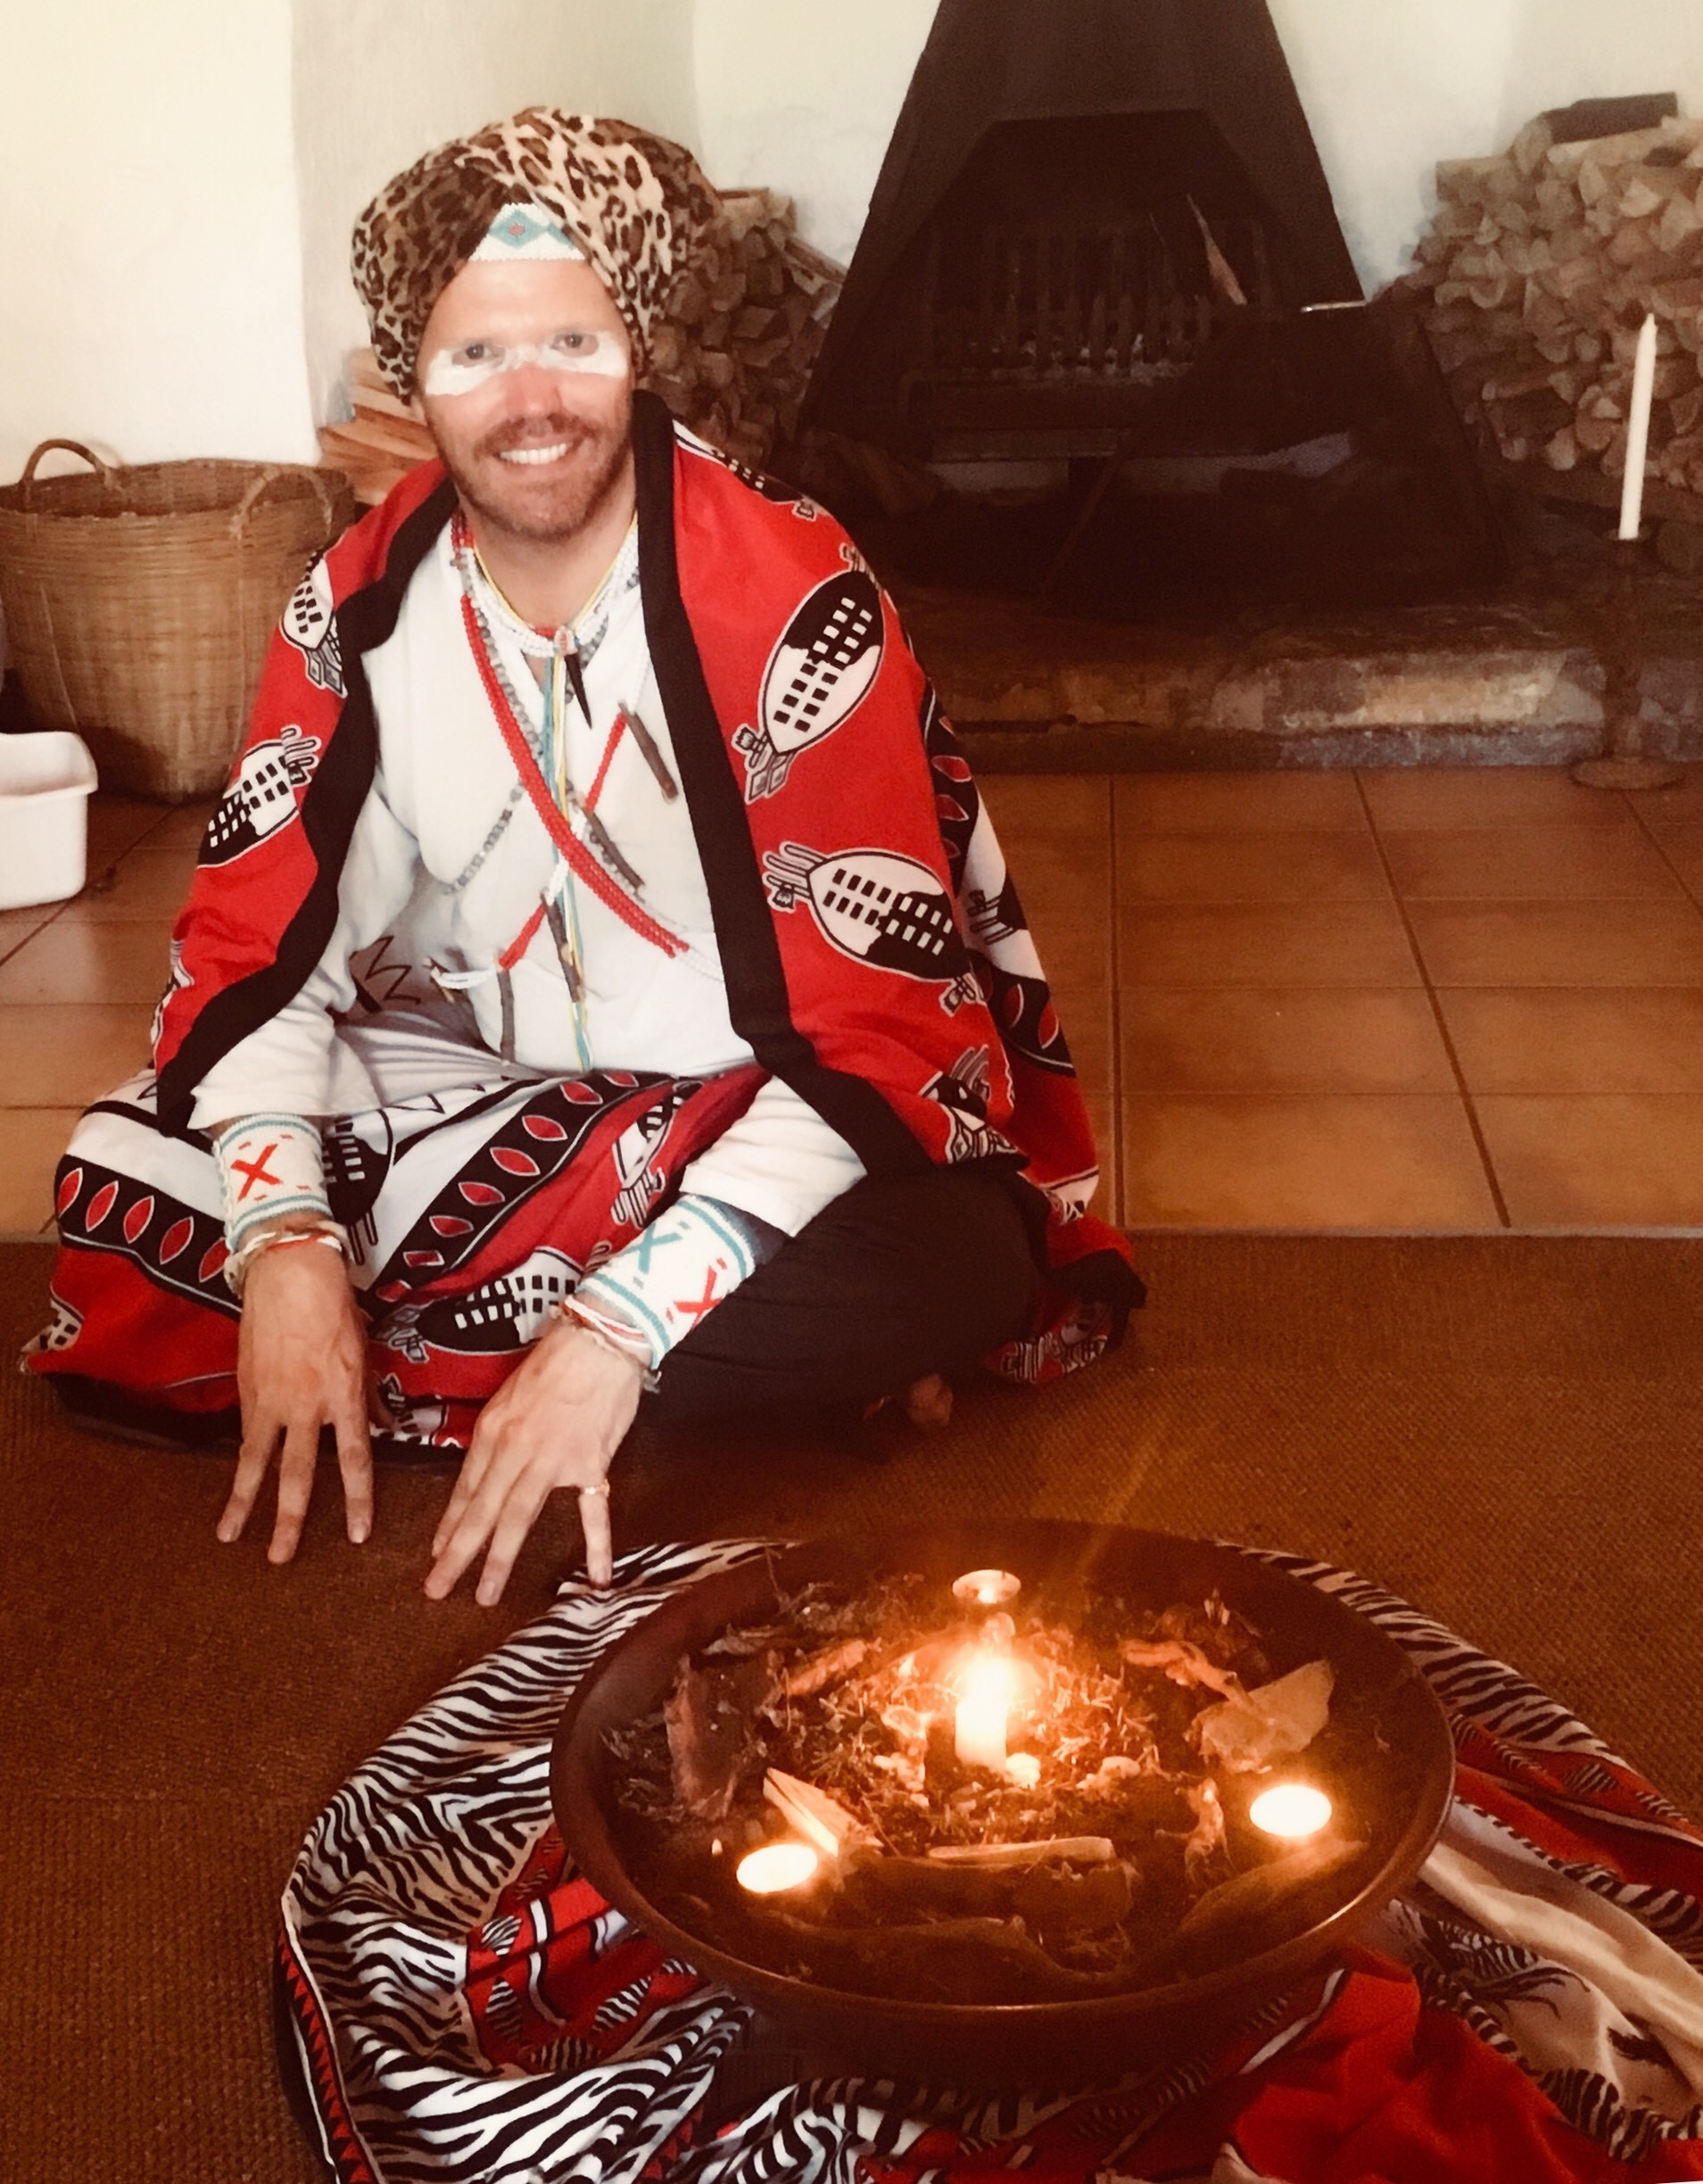 John performing ceremony in Zululand, South Africa